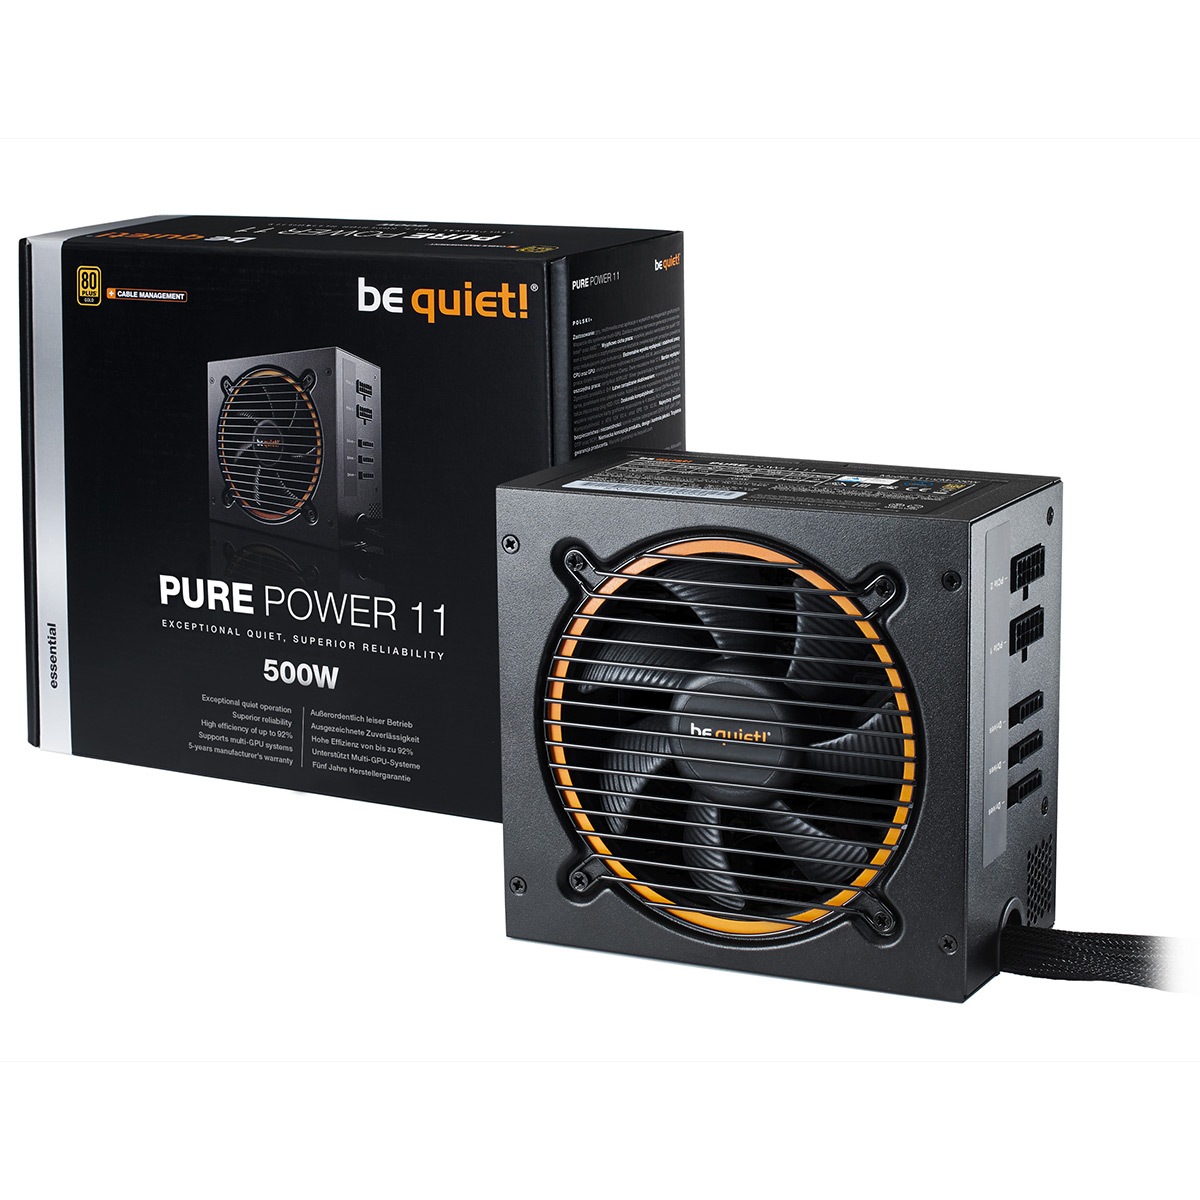 Alimentation PC be quiet! Pure Power 11 500W CM 80PLUS Gold Alimentation modulaire 500W ATX 12V 2.4 (Garantie 5 ans constructeur) - 80PLUS Gold